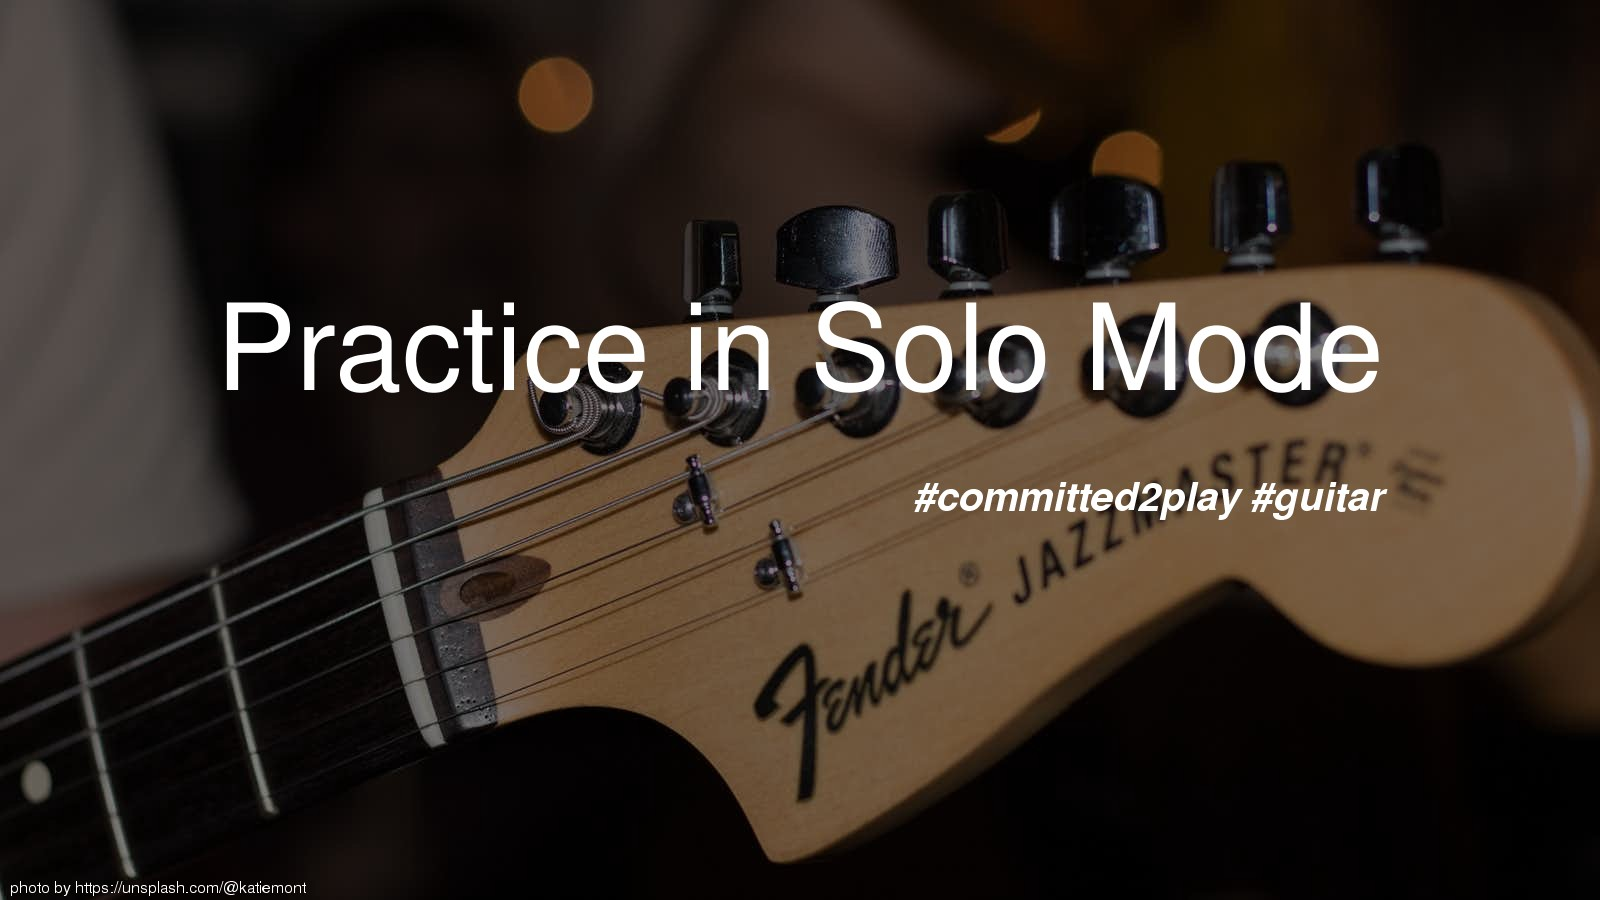 Practice in Solo Mode